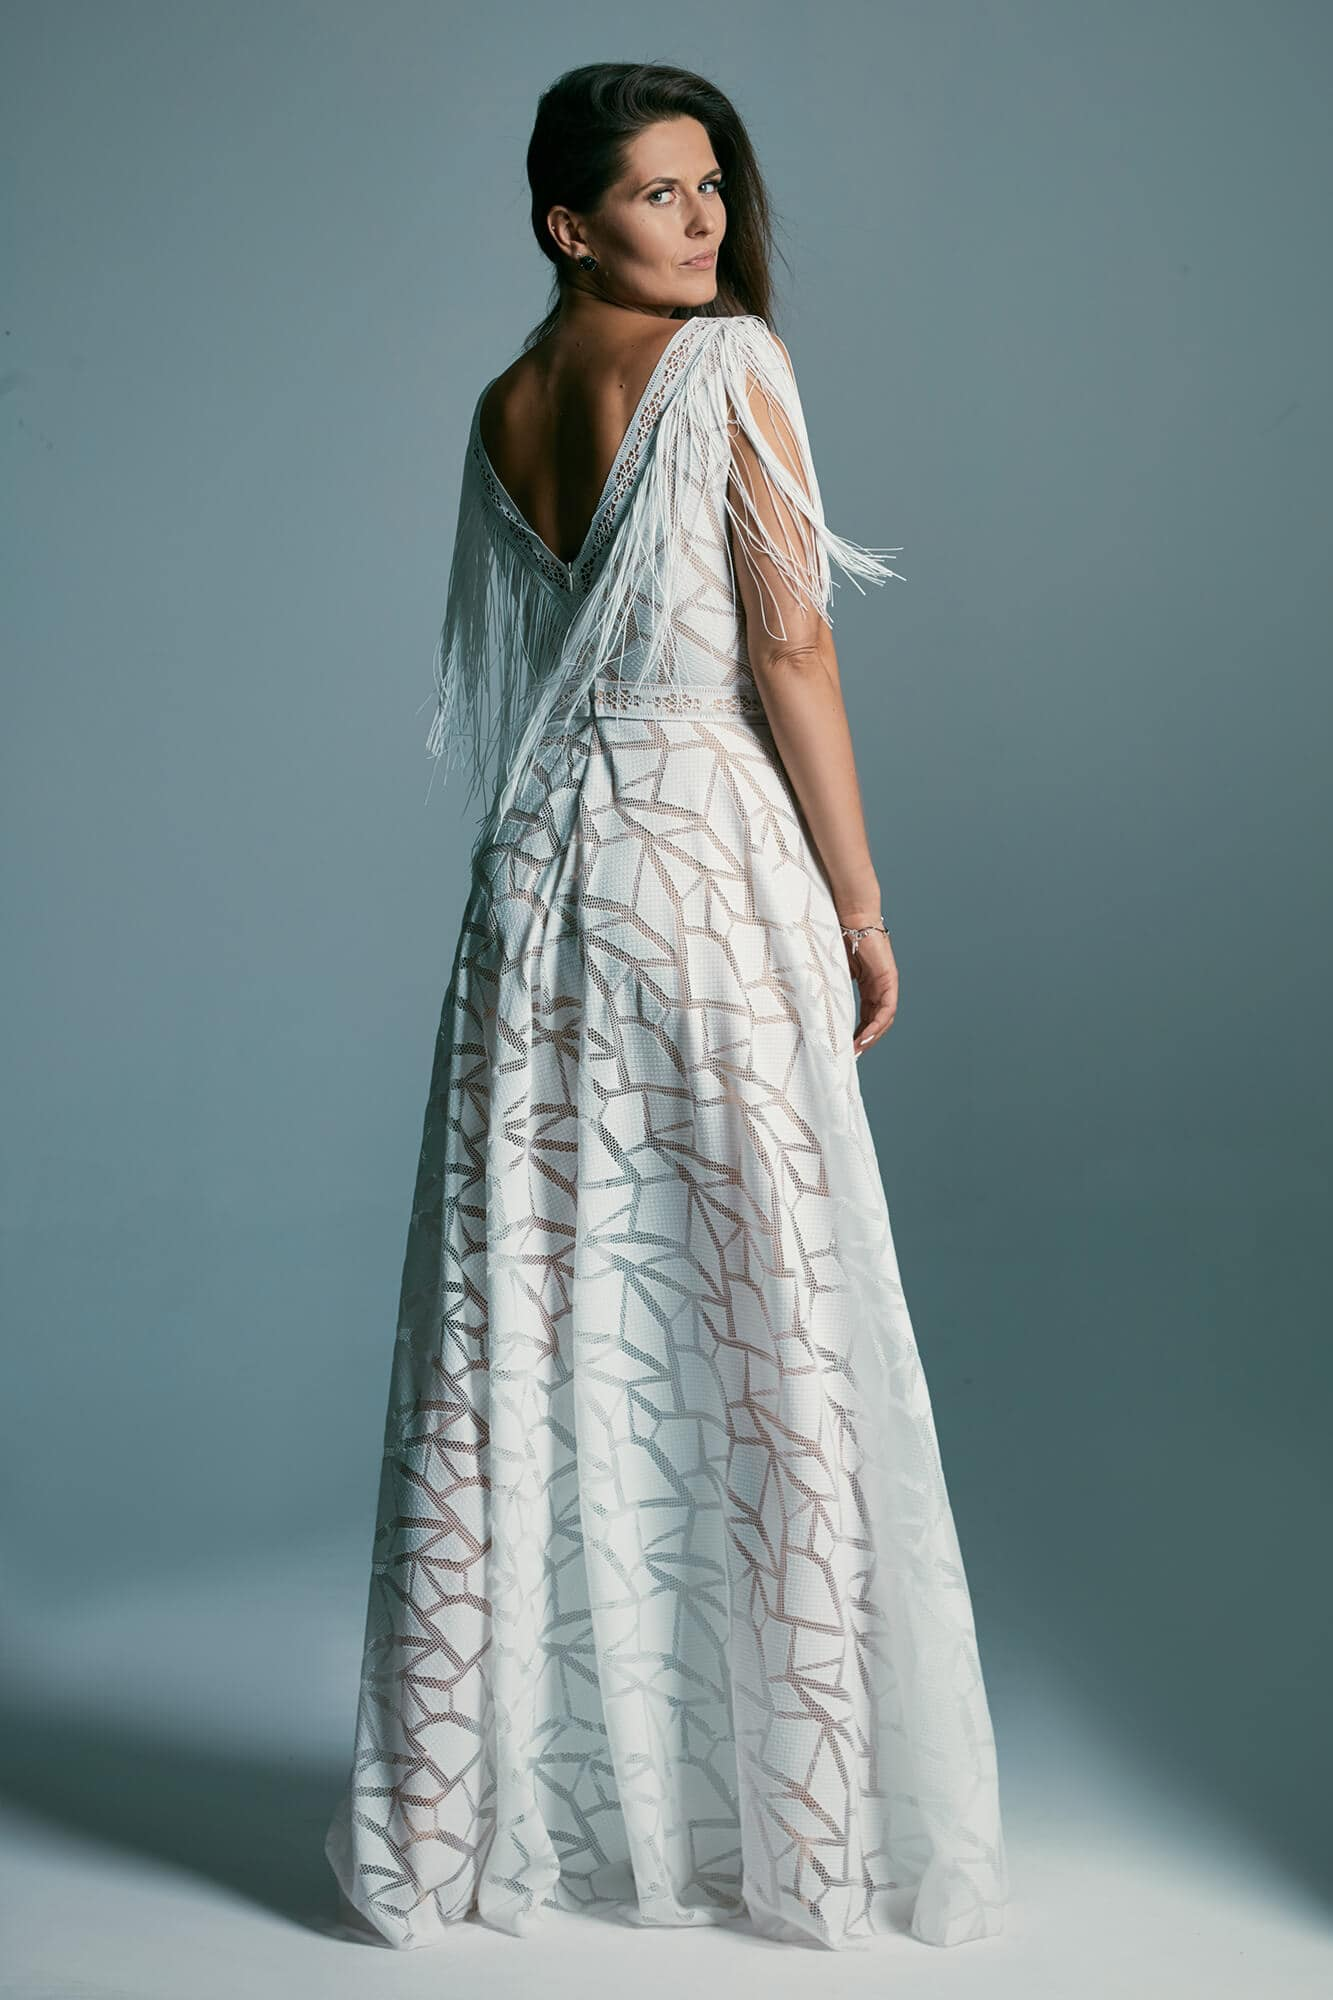 Wedding dress with a bold cut from lace with a geometric pattern Santorini 3